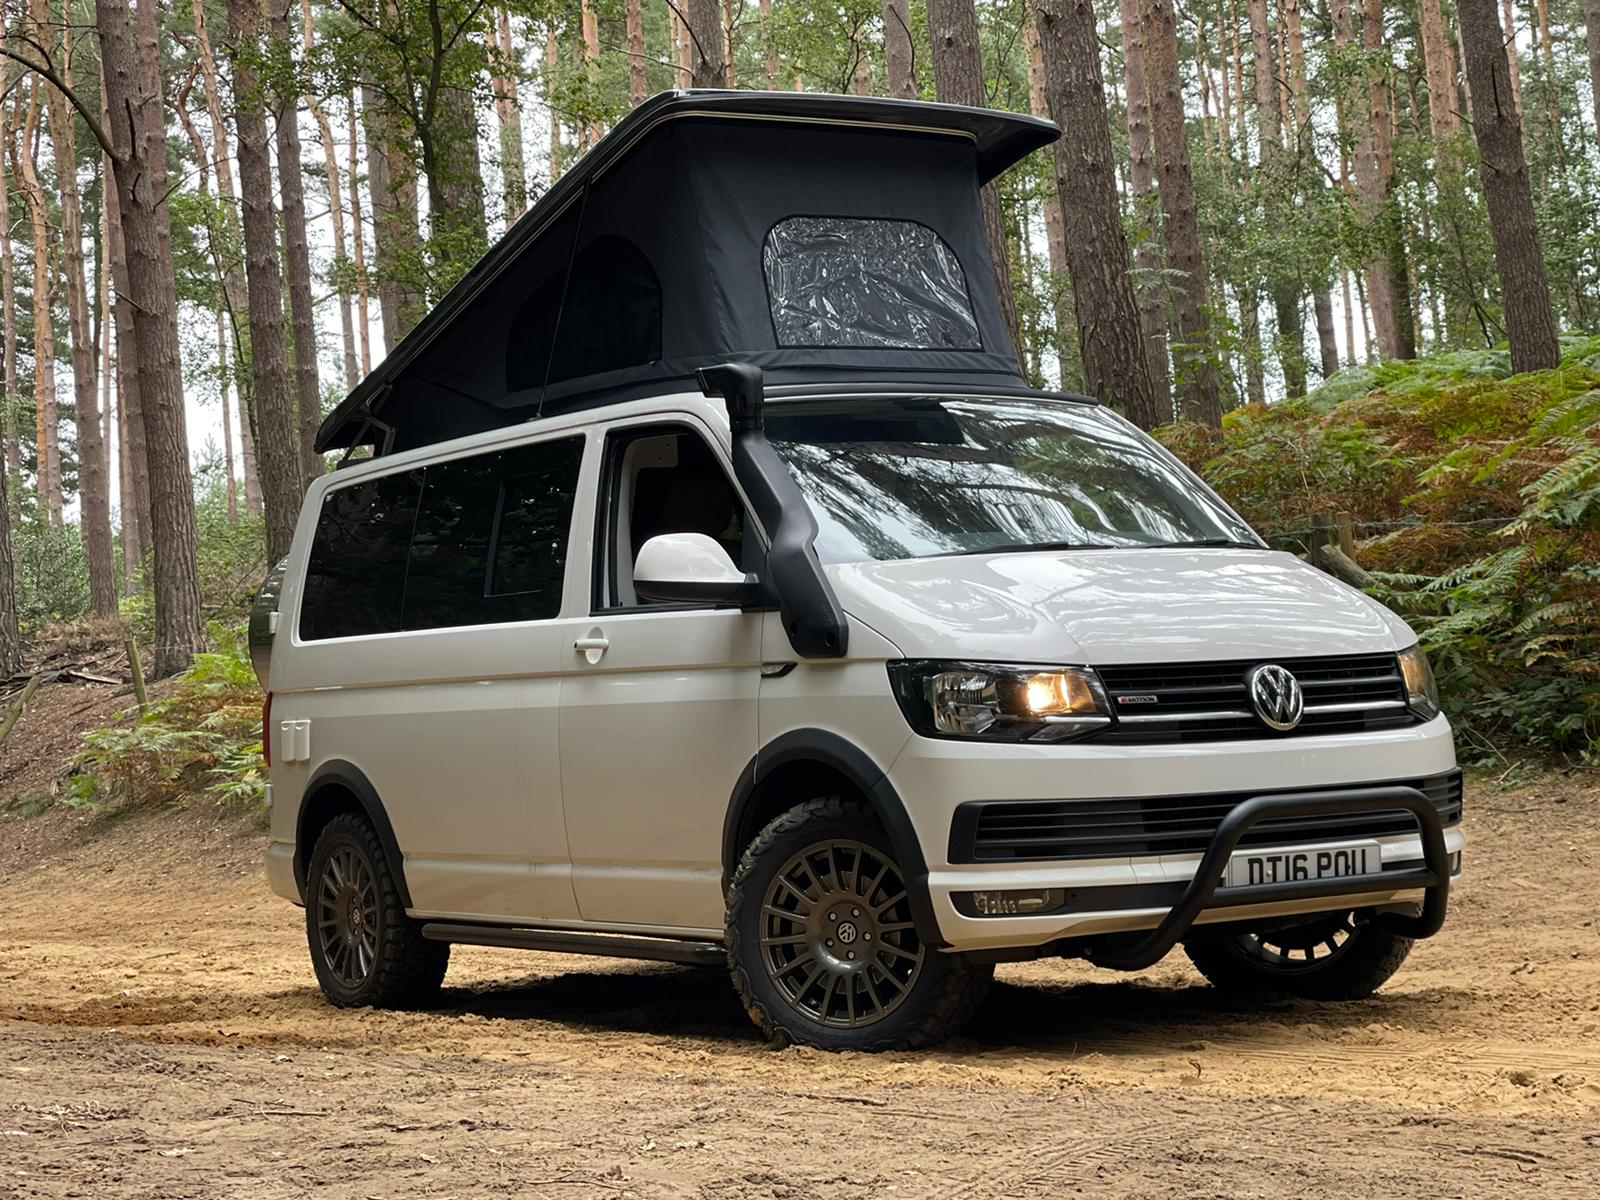 VW T6 Highline - 4x4 Swamper with Pop Top Roof - 4motion Go Anywhere! - 13th Sep